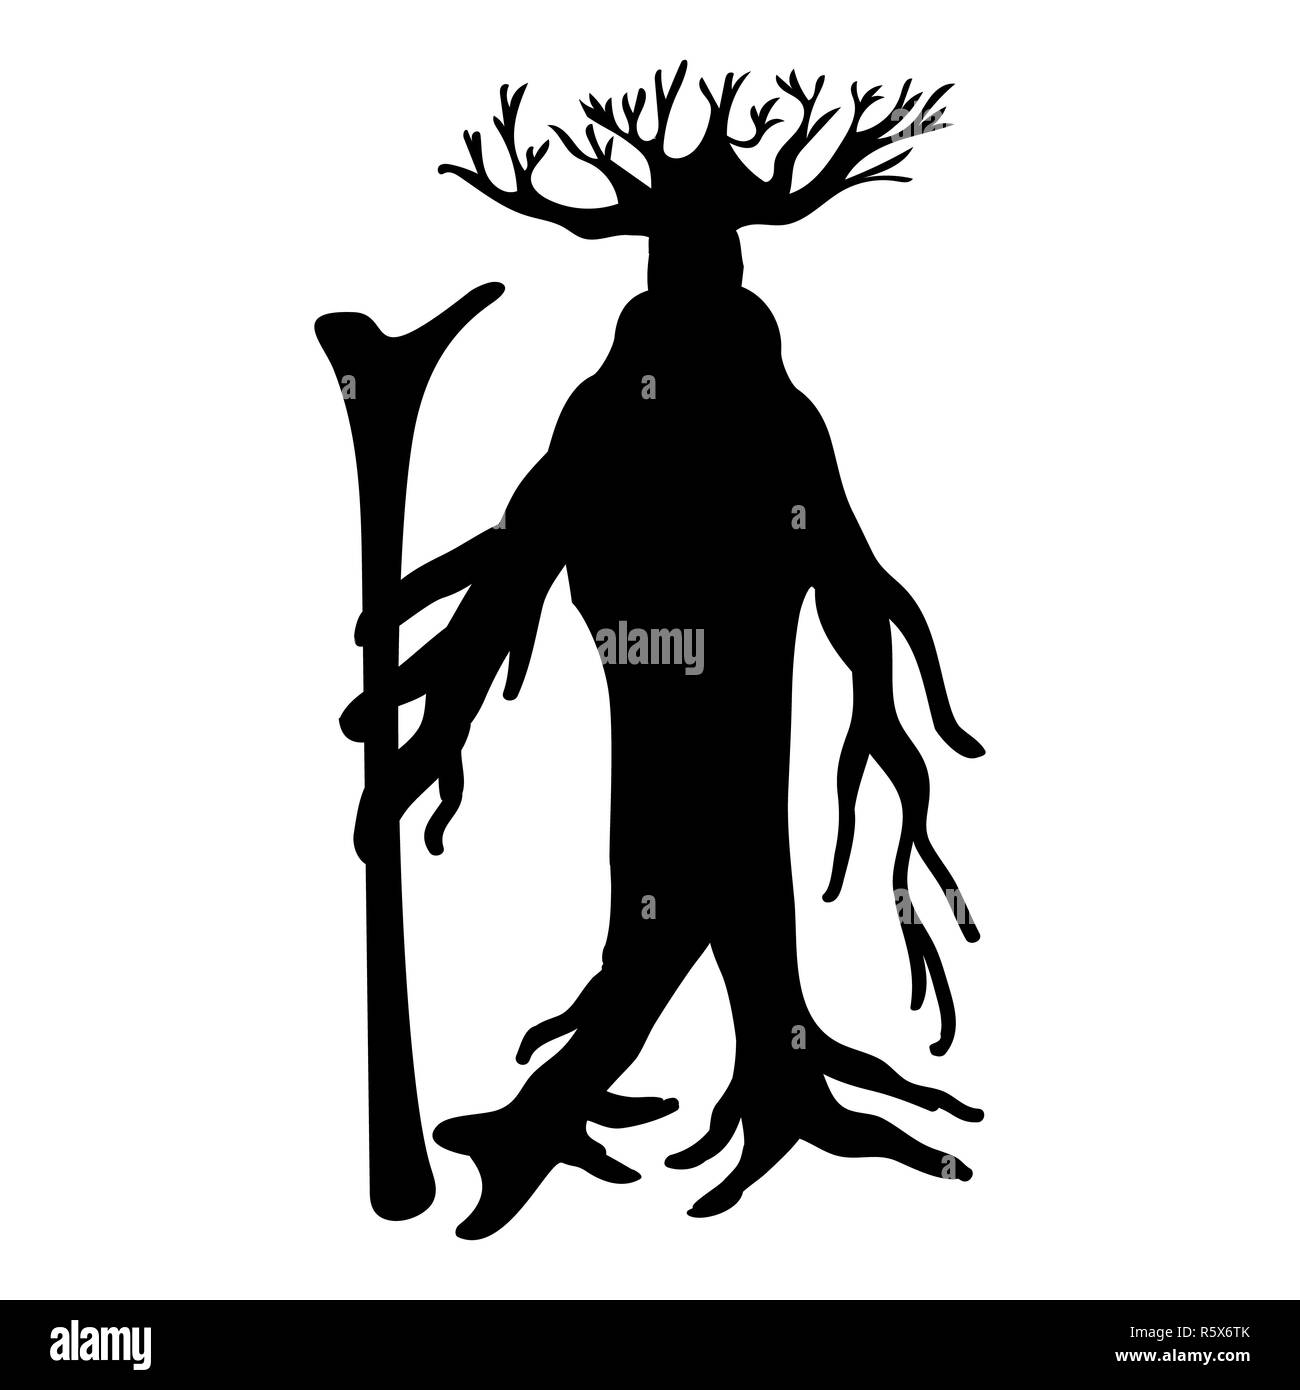 Ent tree silhouette ancient legend fantasy - Stock Image